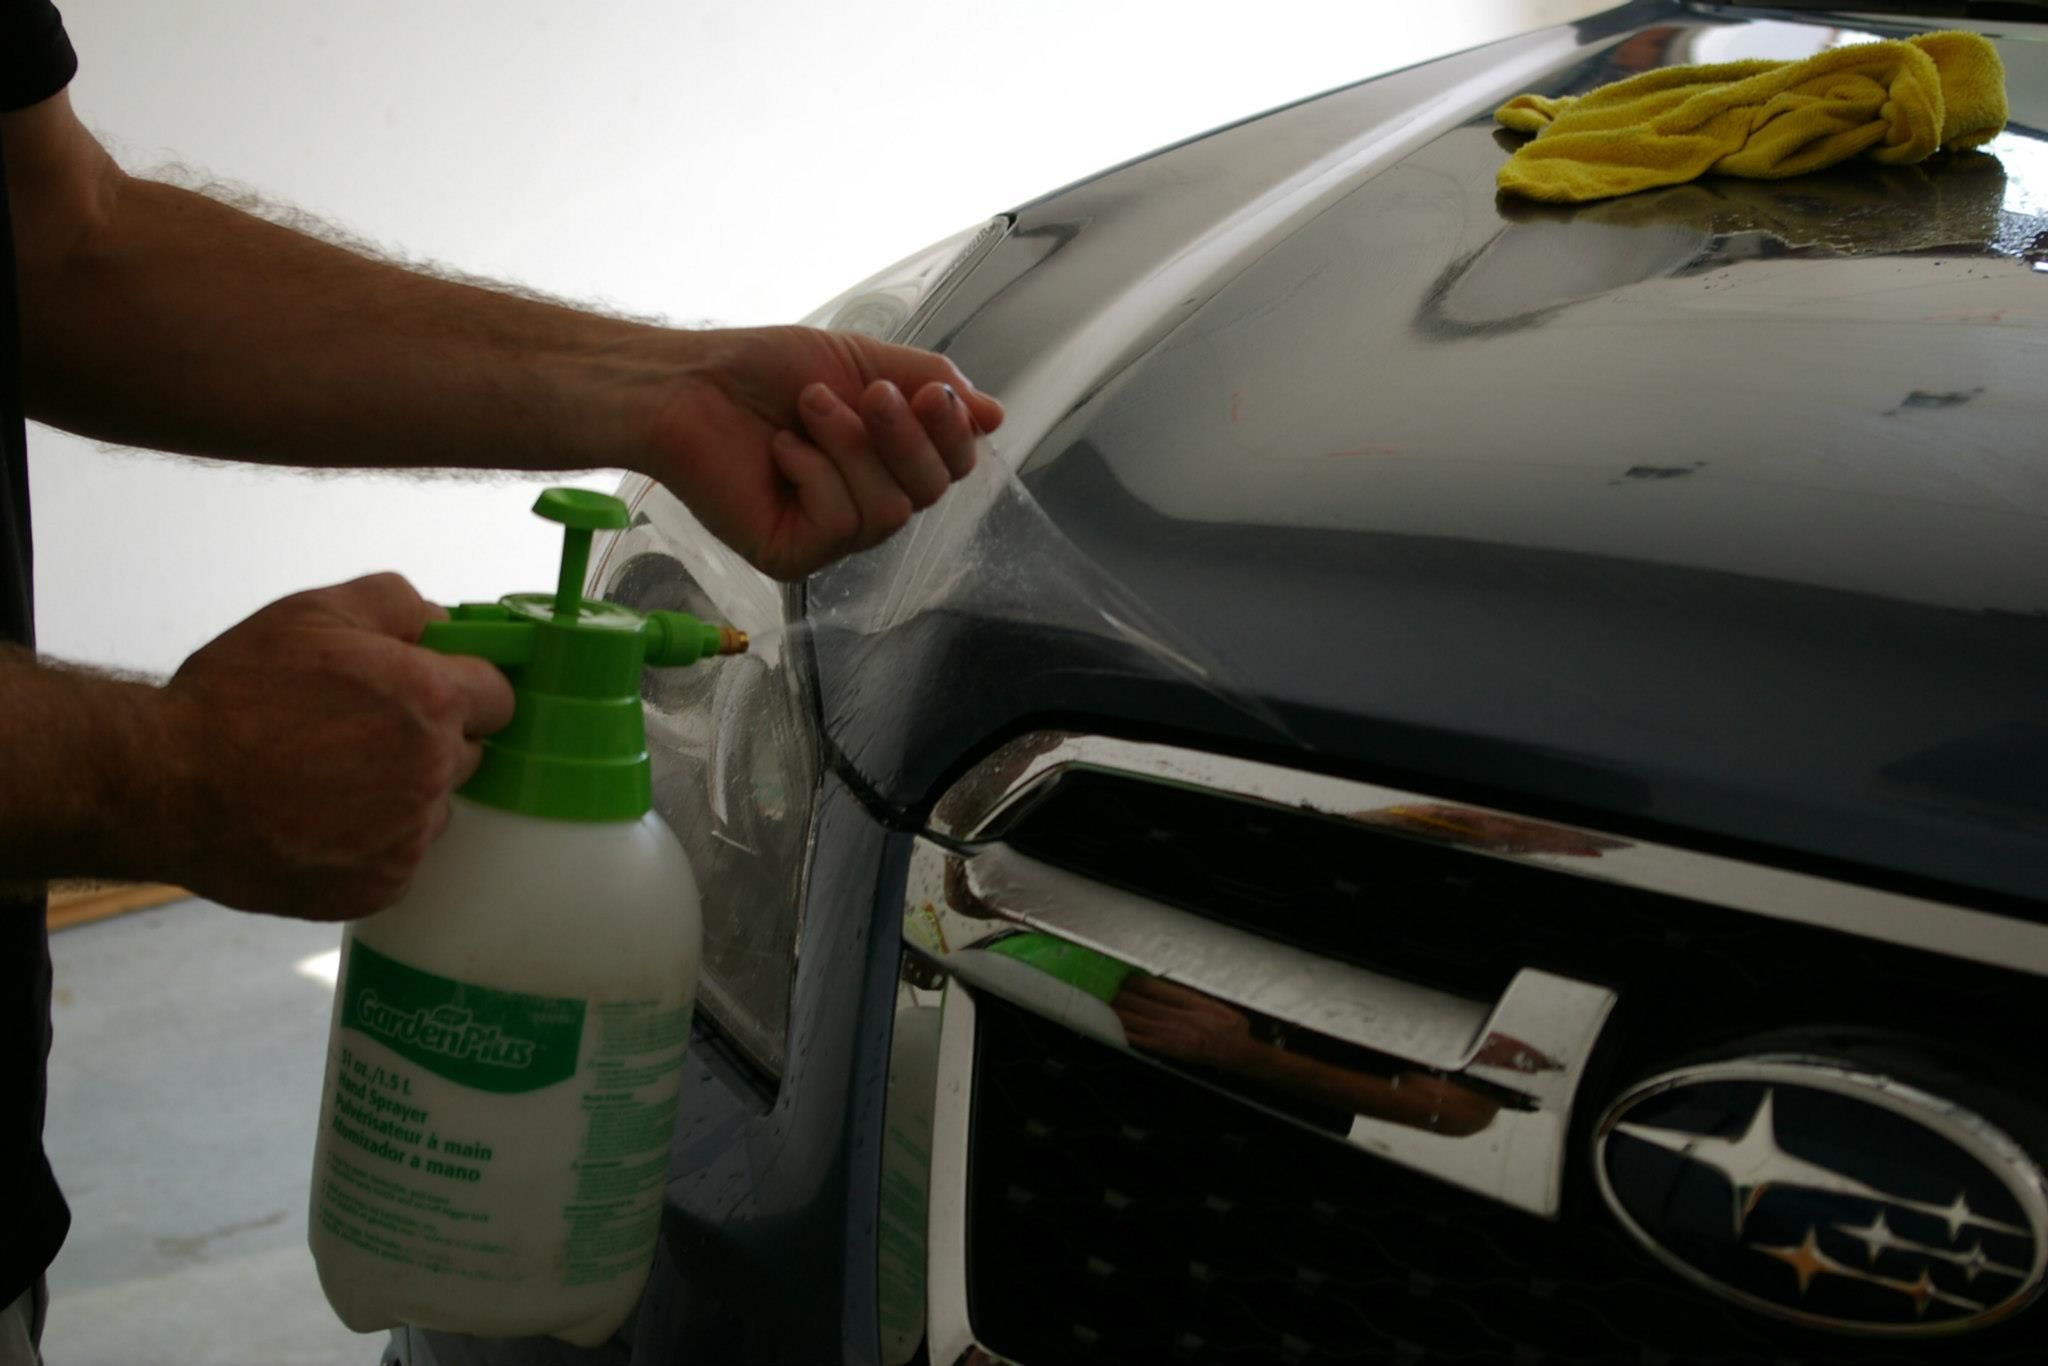 This is a paint protection film installation project that